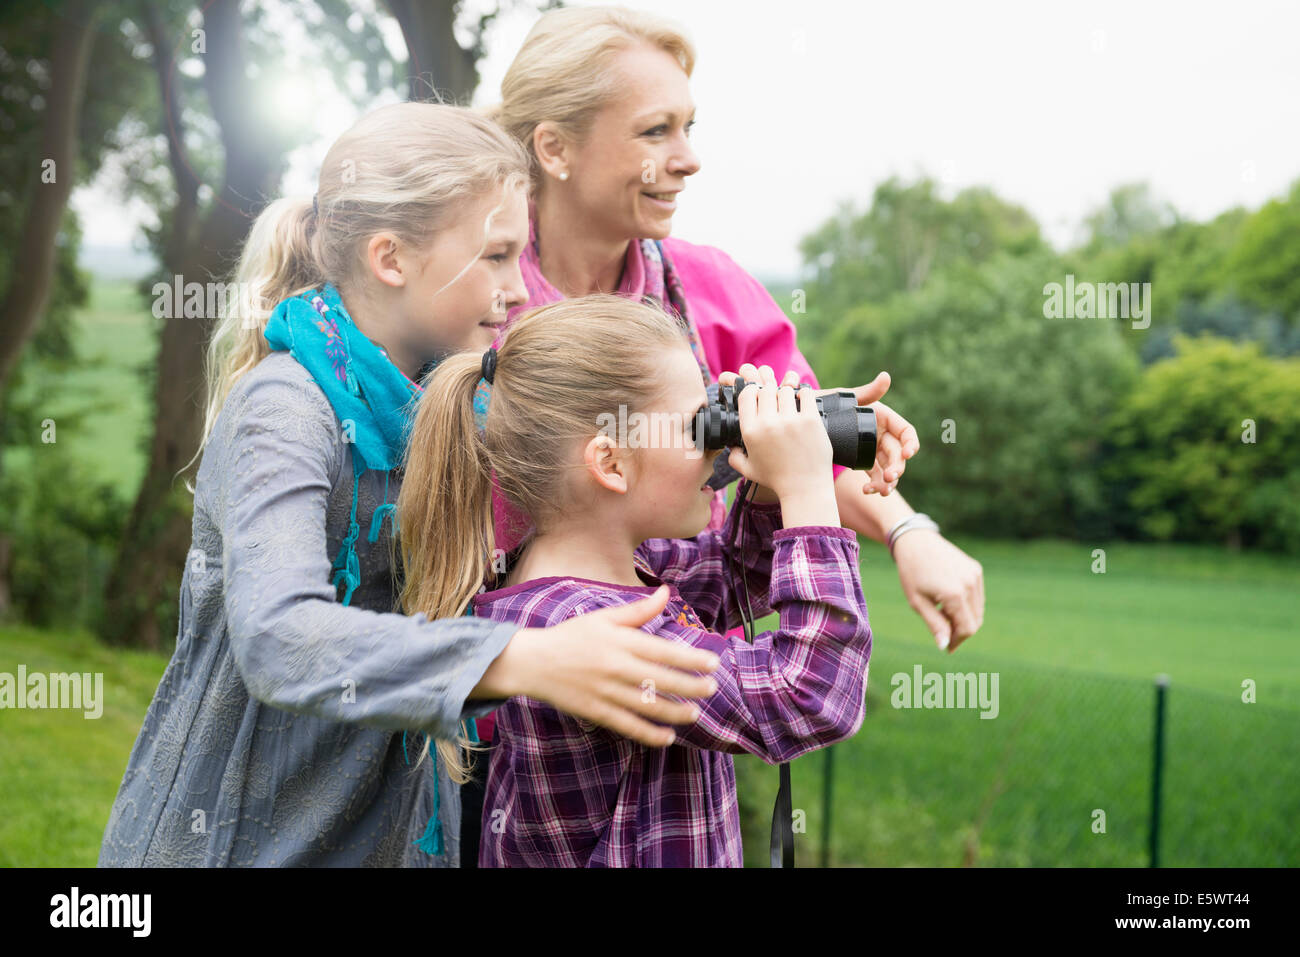 Mother and daughters using binoculars - Stock Image